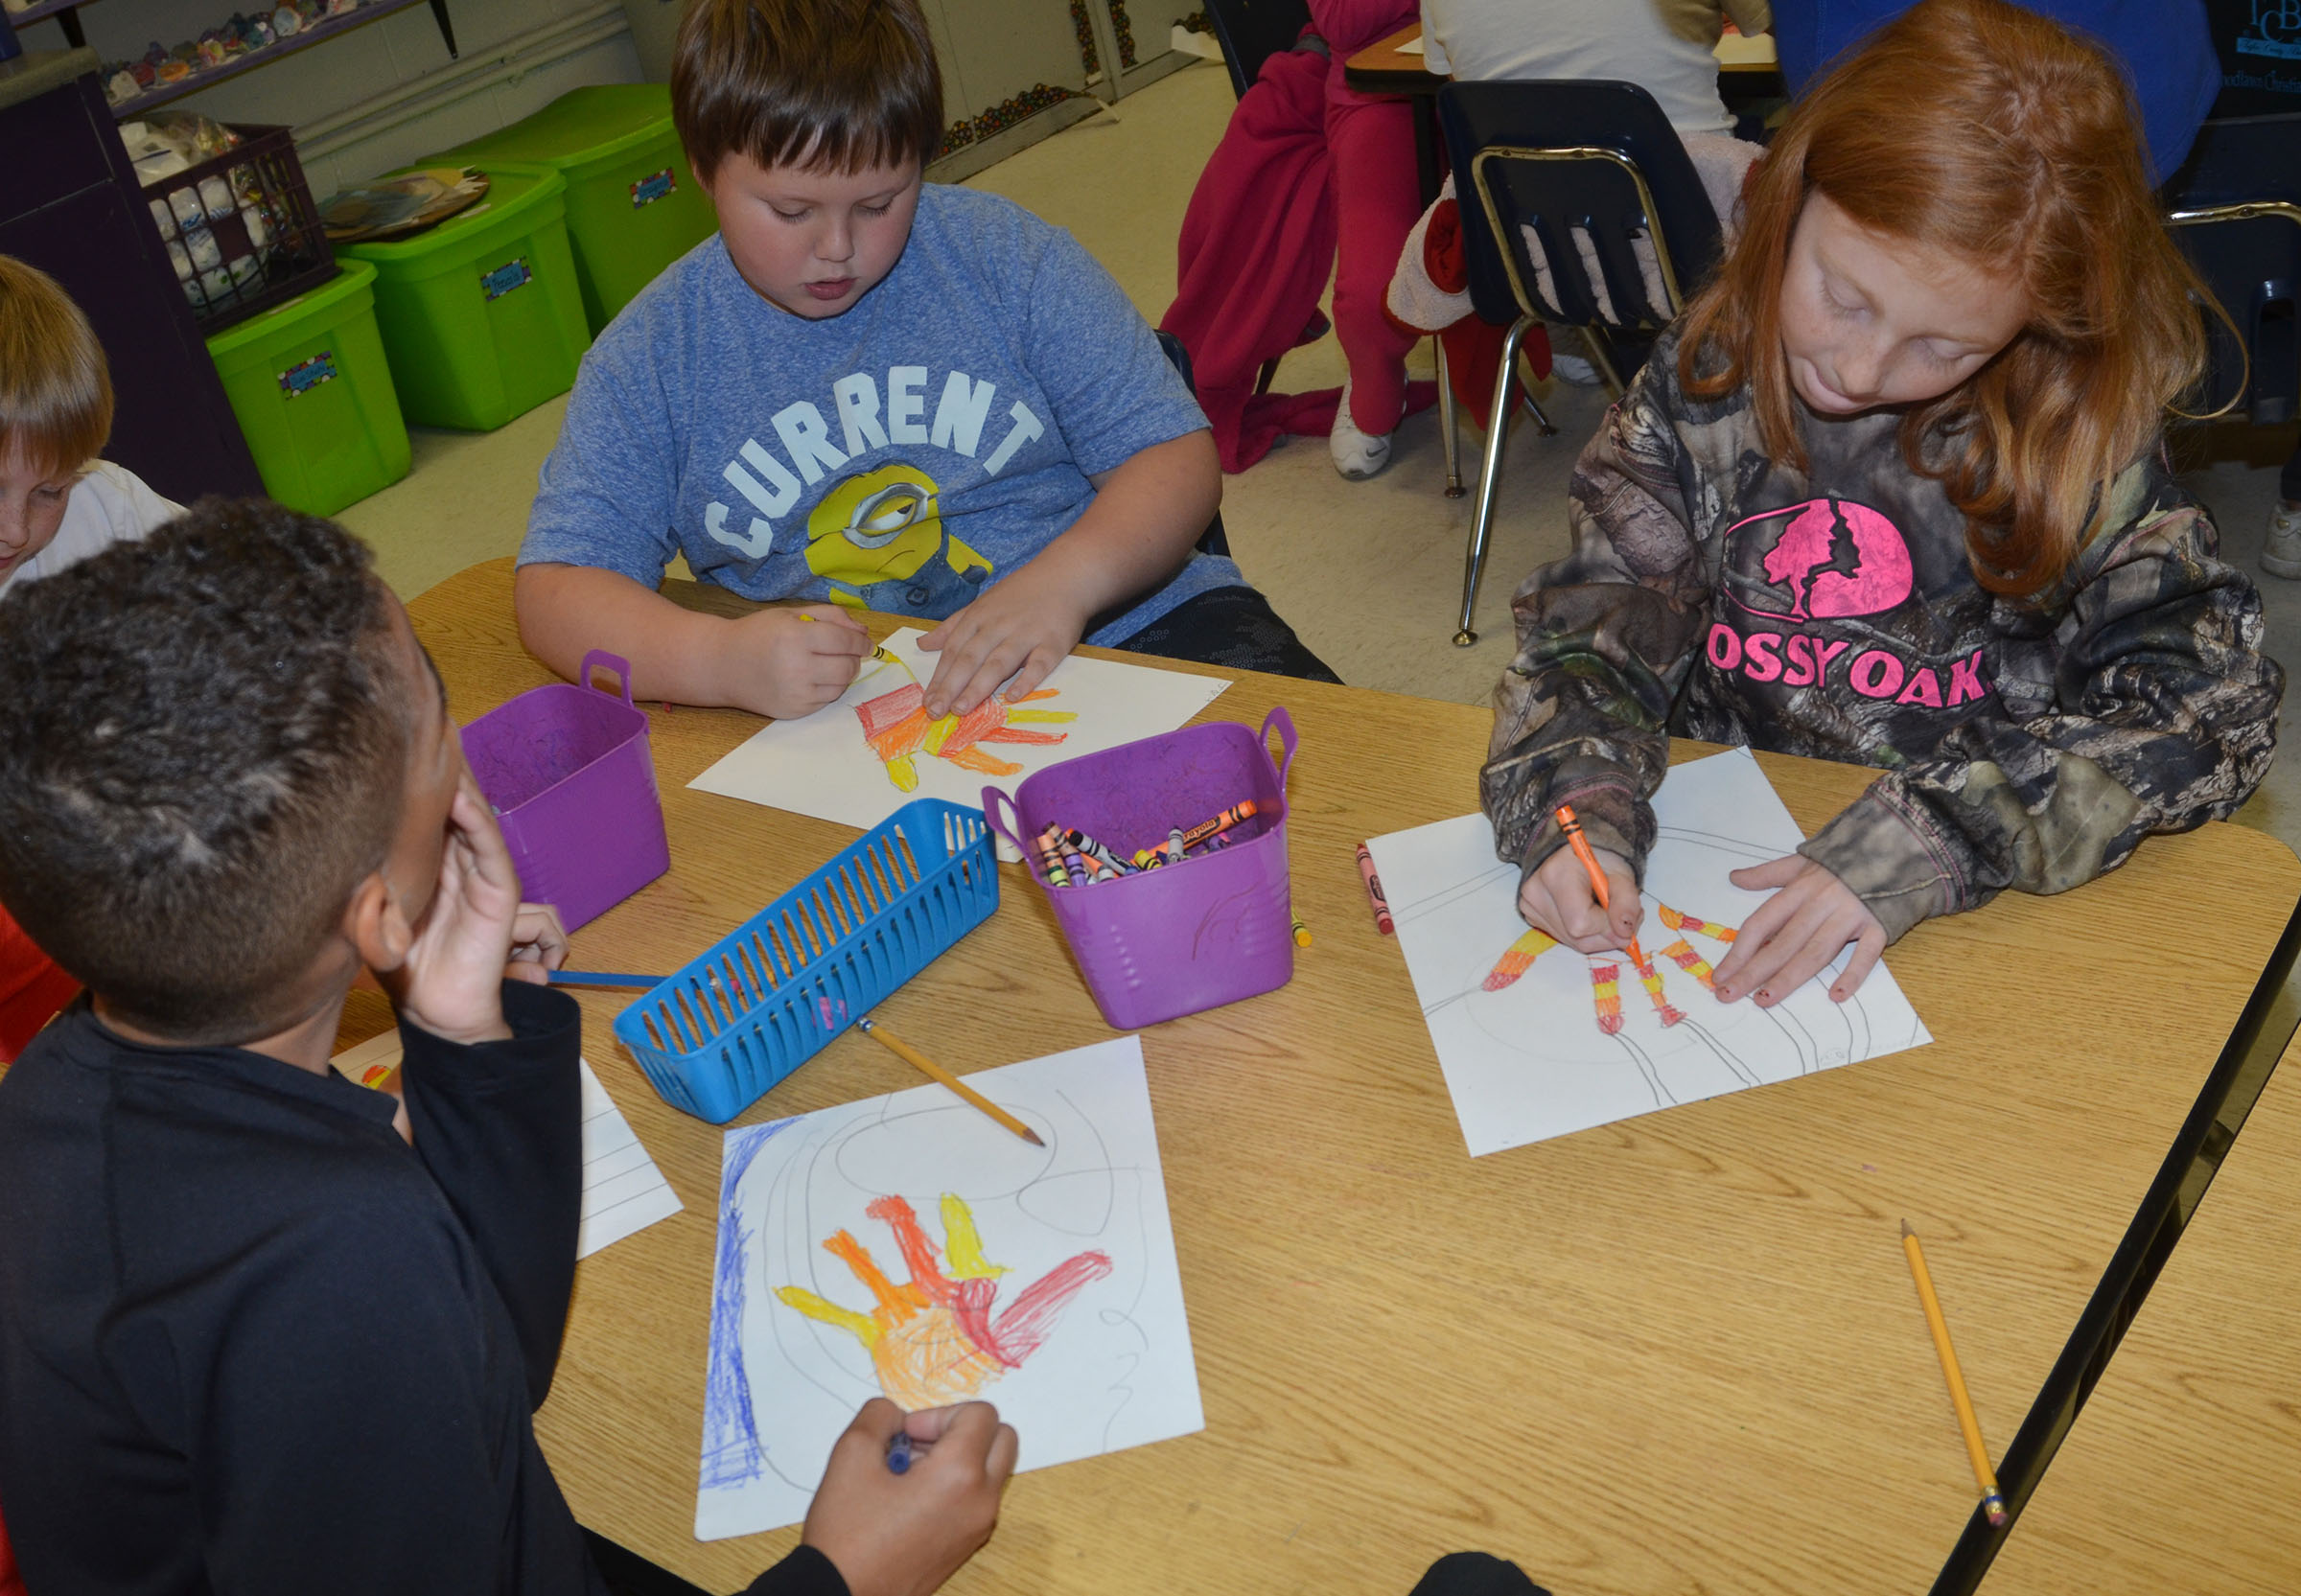 CES third-graders, from left, Jaden Barbee, Jace Cox and Savannah Wethington color their hands with warm color designs.